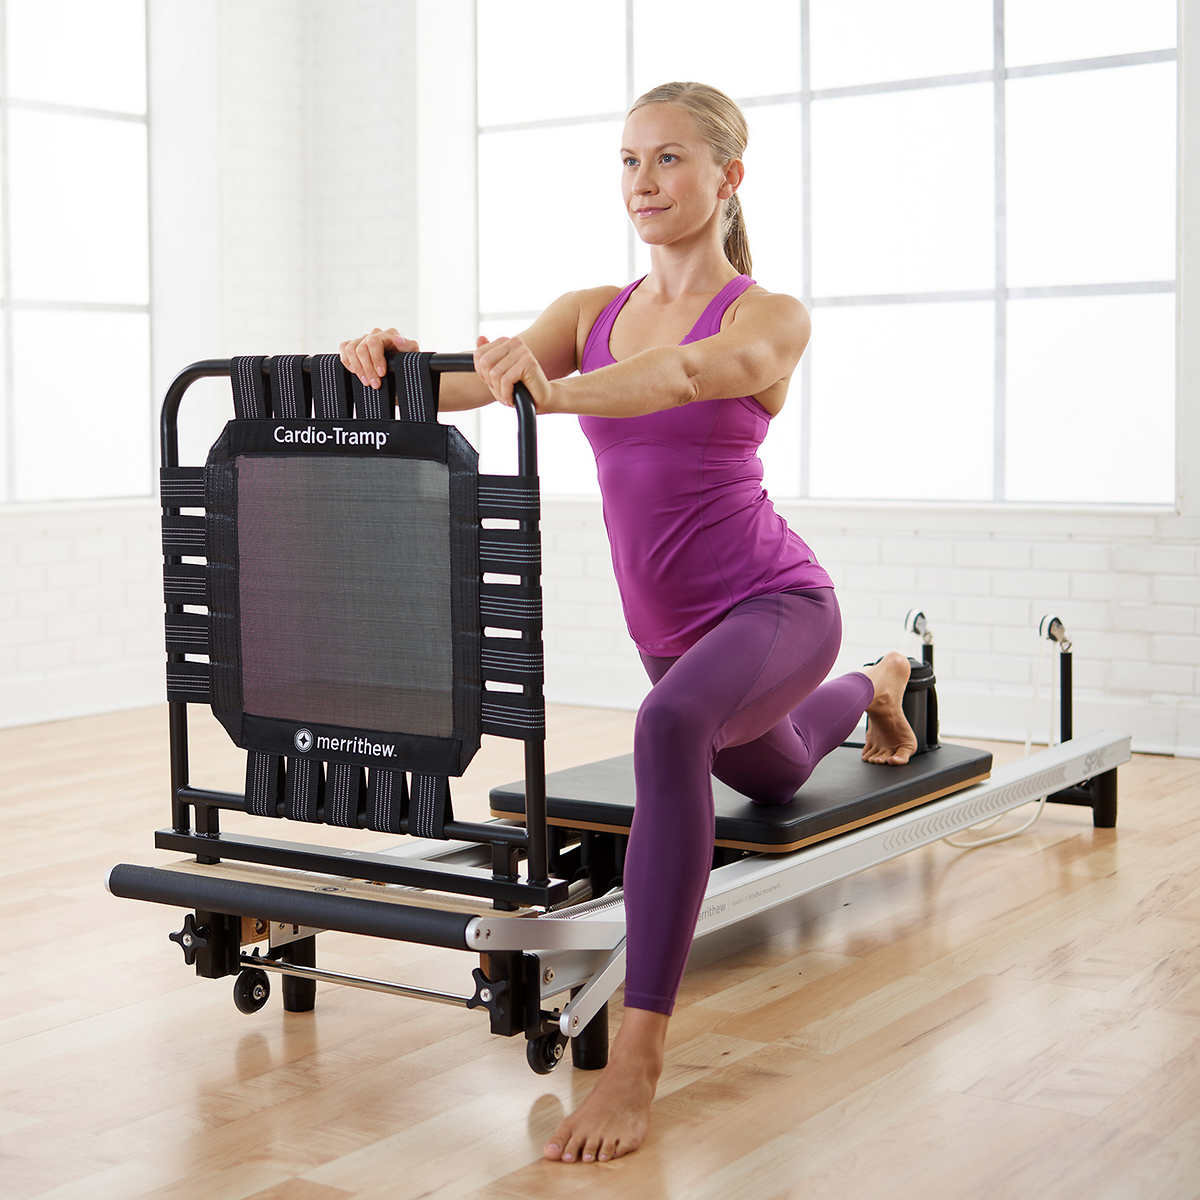 At Home Spx Reformer Cardio Package With Digital Workouts By Merrithew Stott Pilates